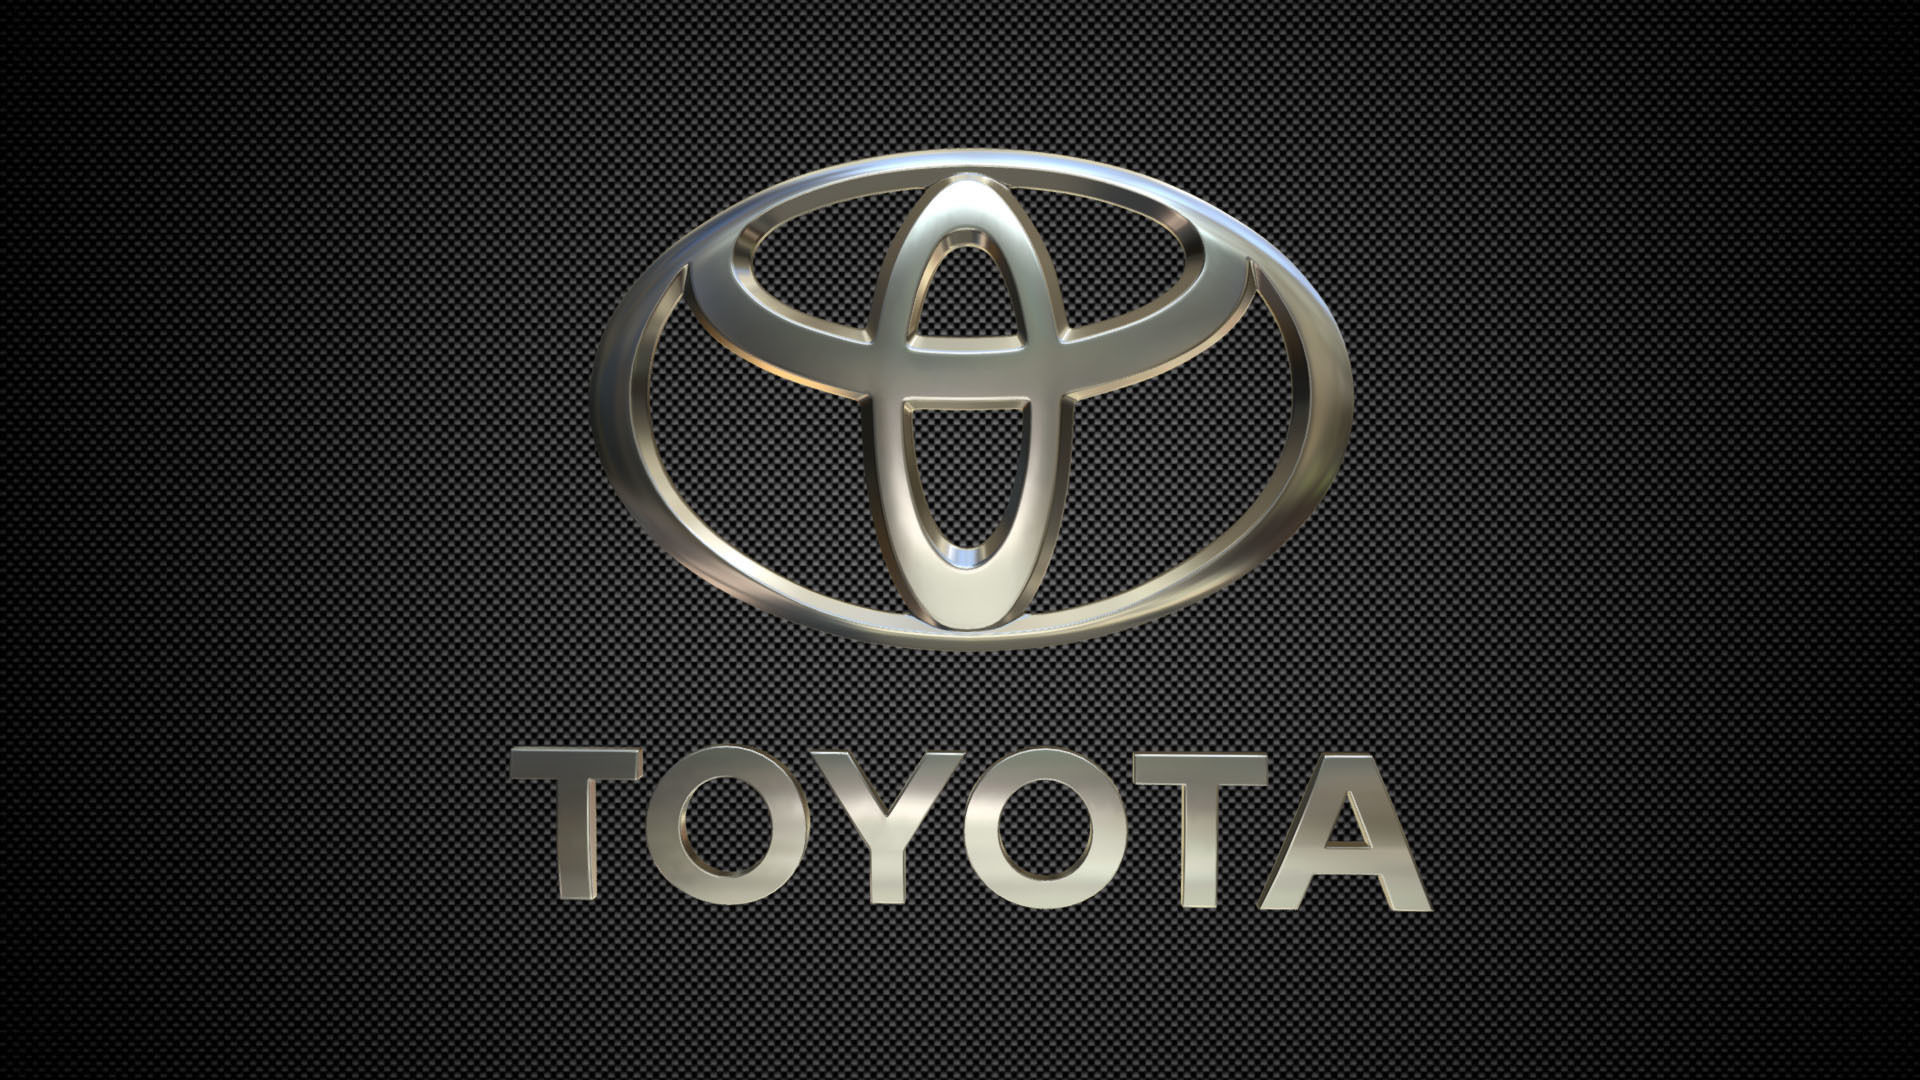 Toyota Company aims at building test tracks in Michigan